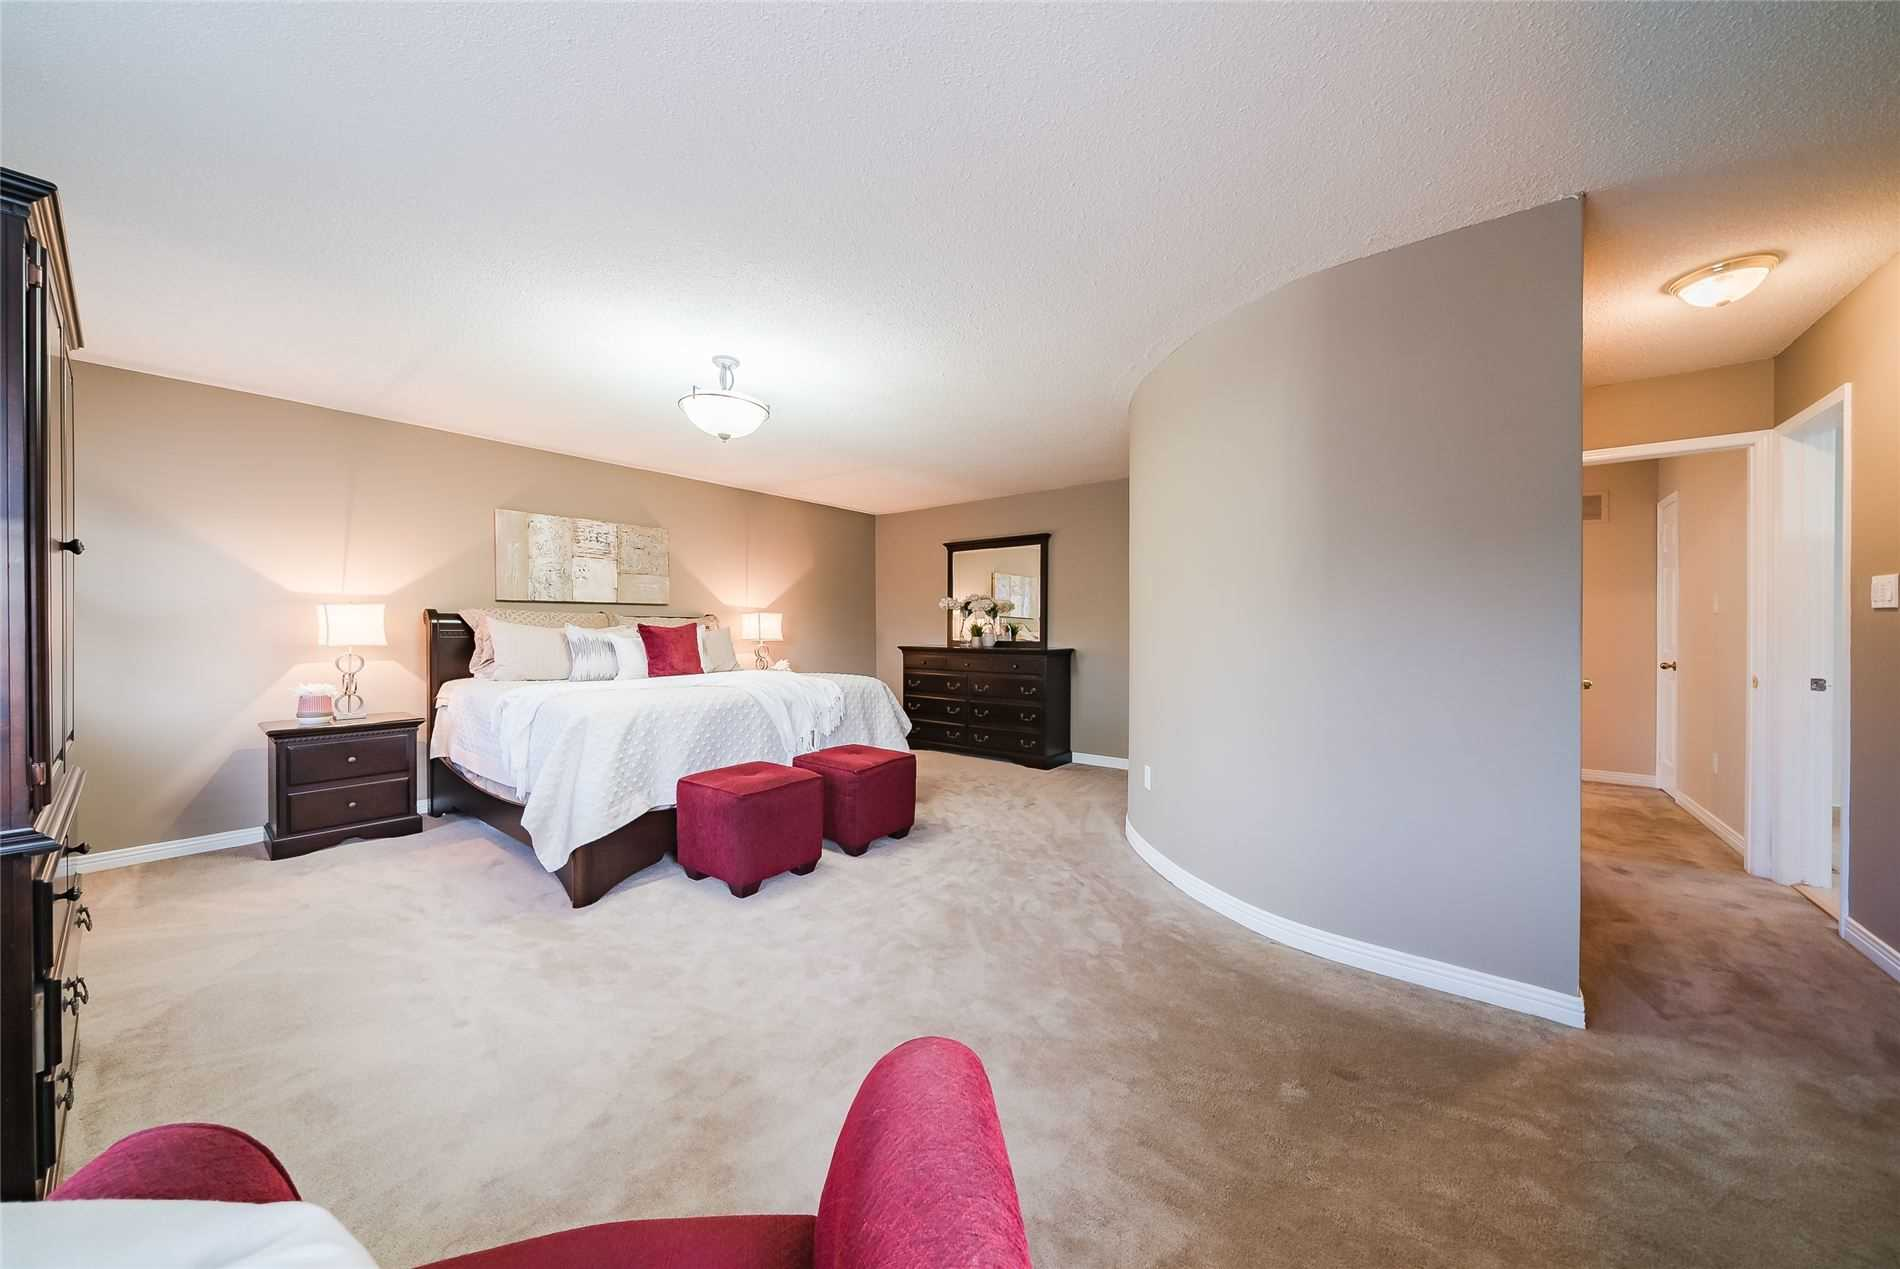 pictures of house for sale MLS: E4928770 located at 1072 Rathmore Cres, Pickering L1V5A4